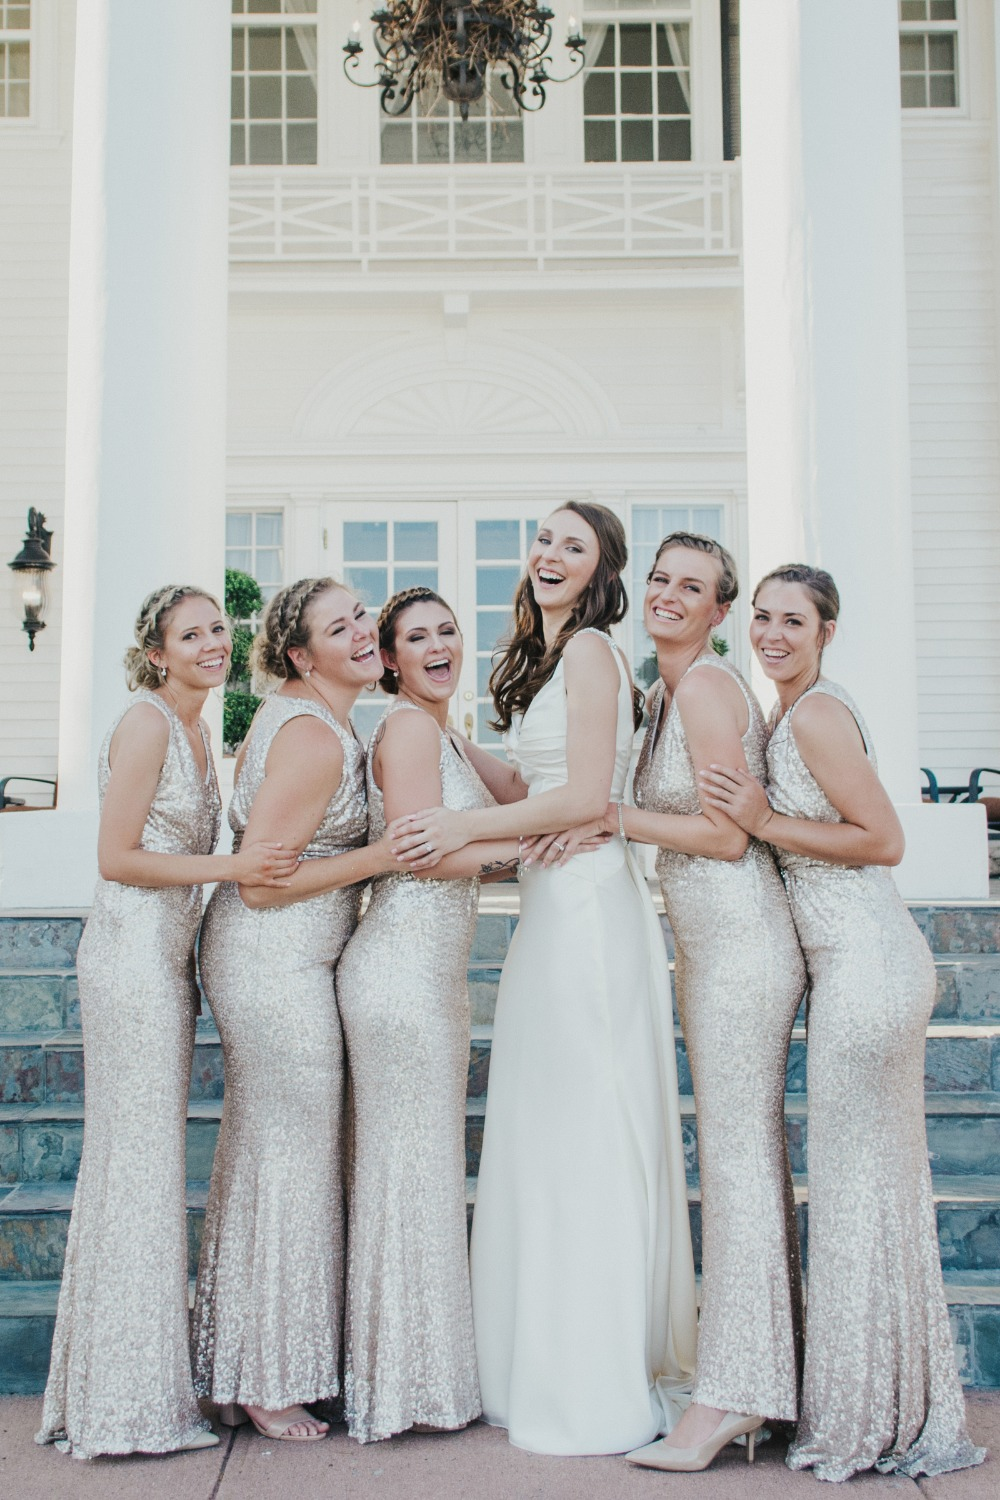 Sparkly gold bridesmaid dresses